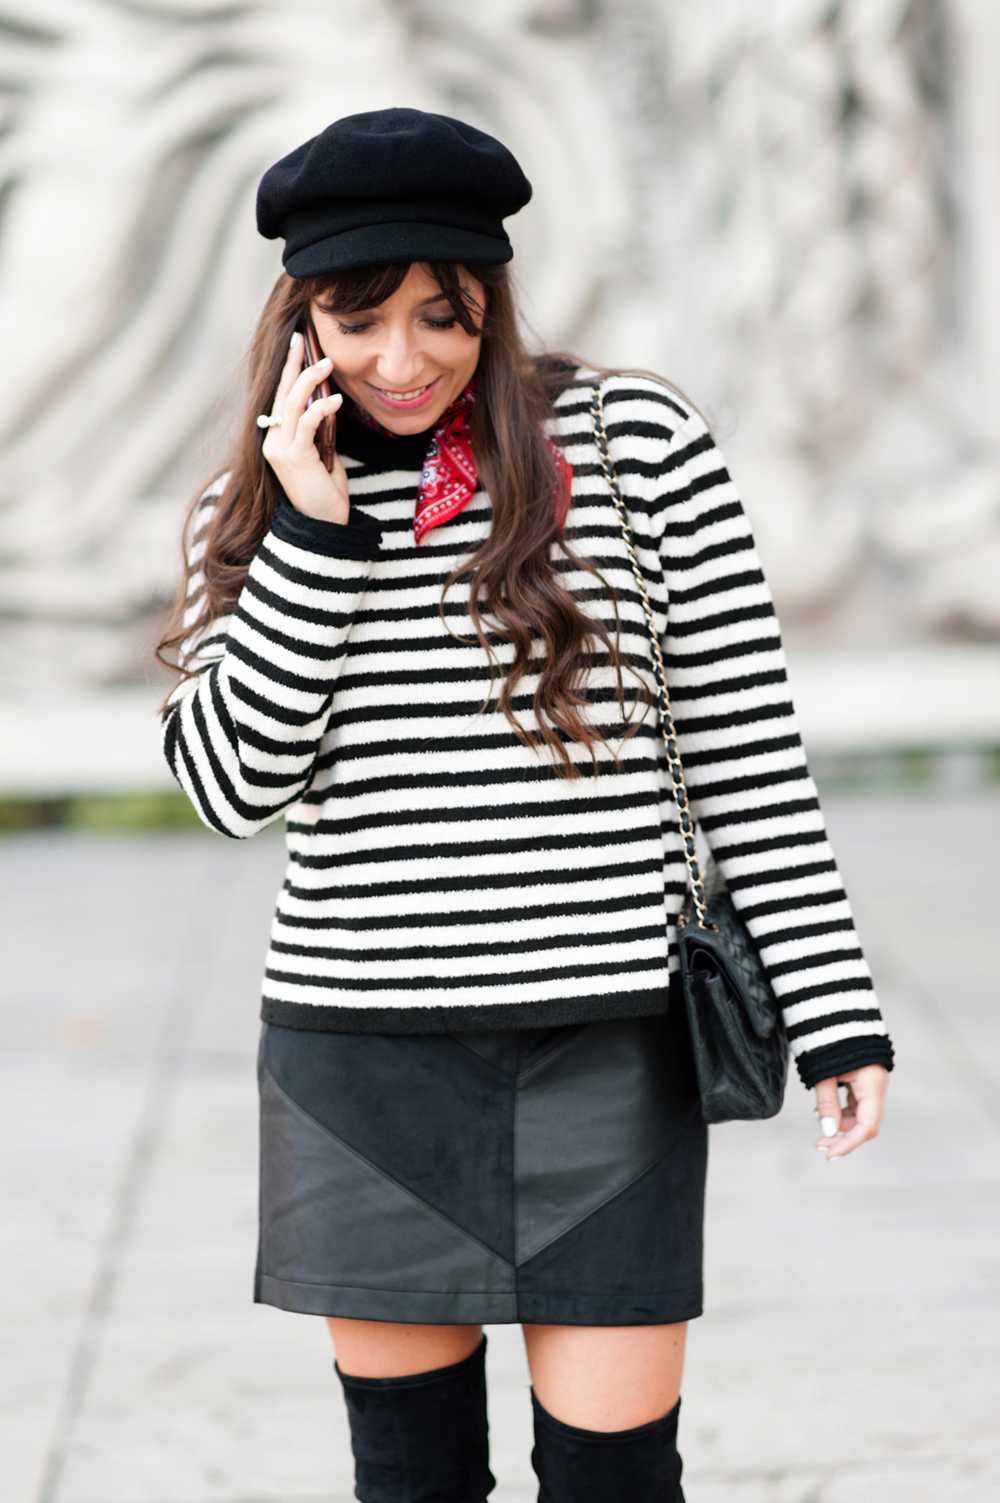 marieluvpink-blog-mode-paris-elora-7